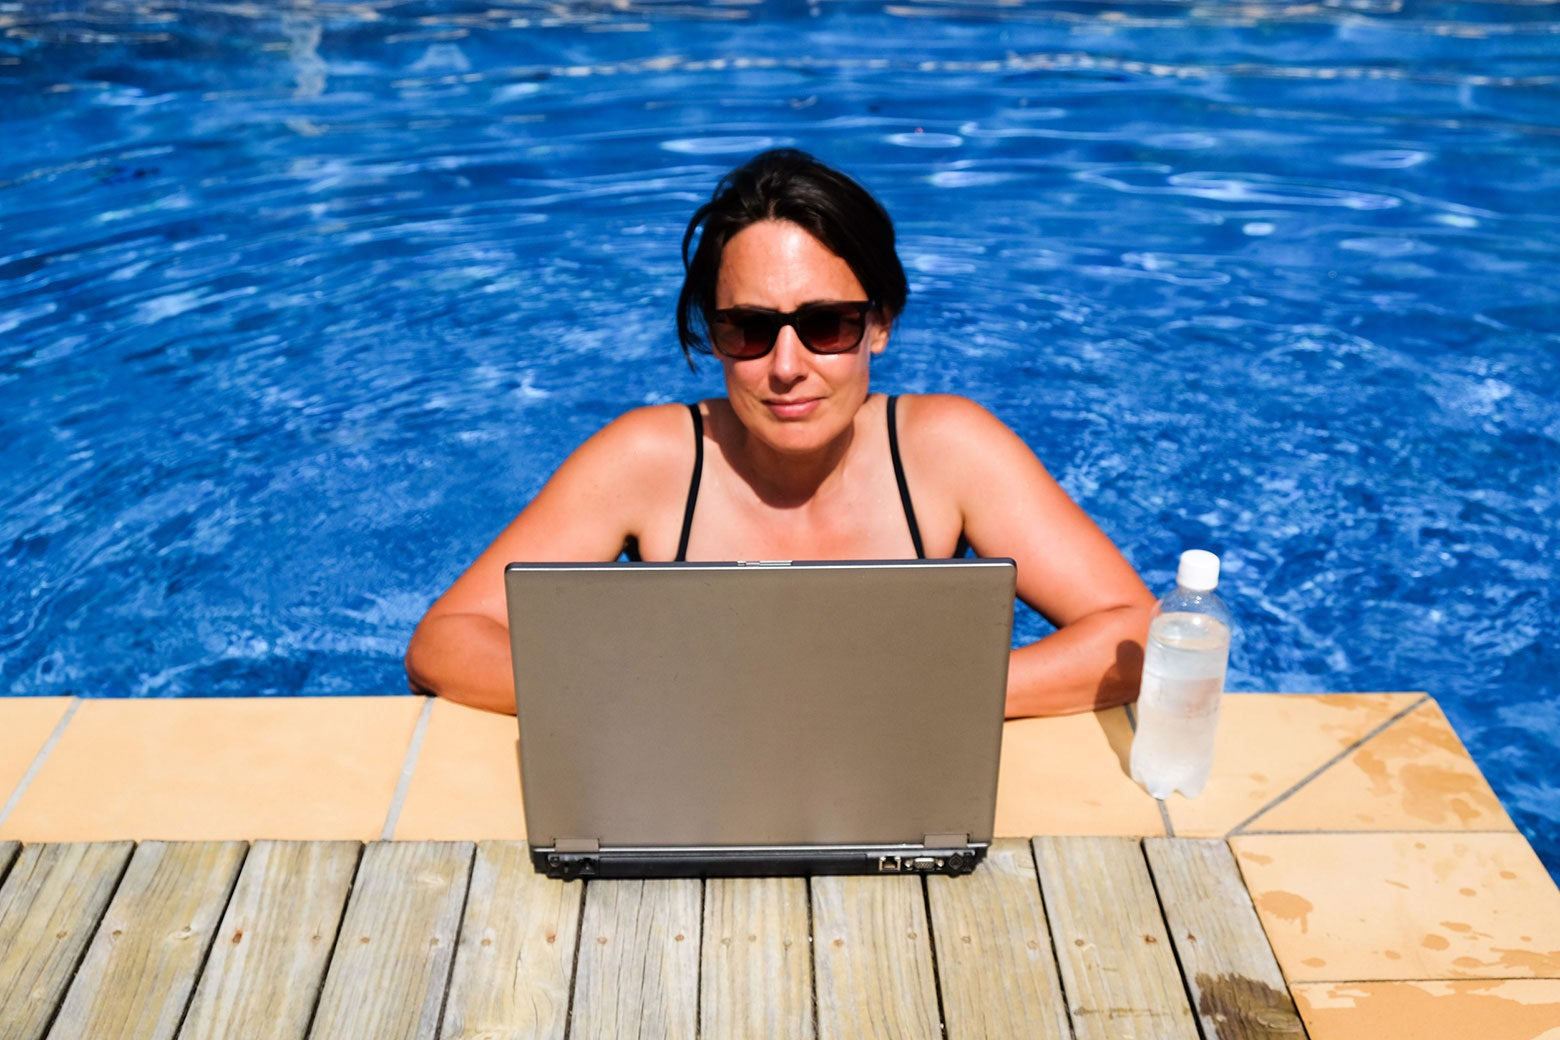 A woman in a swimming pool uses a laptop on the deck of the pool.